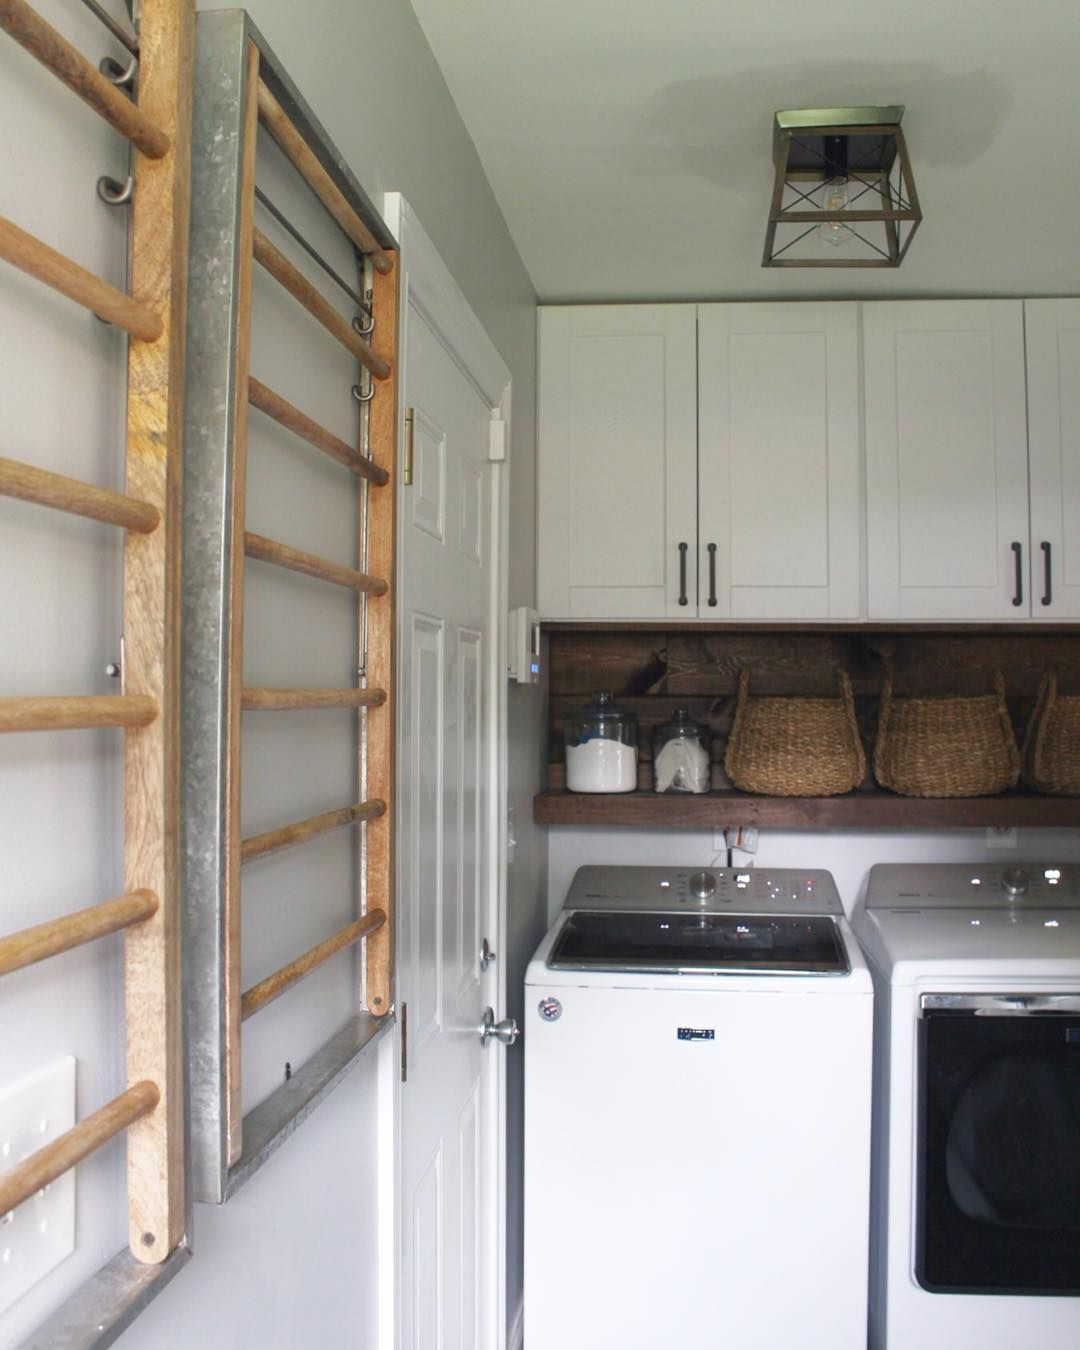 Mud Room Renovation Complete These Wall Mounted Drying Racks Are My